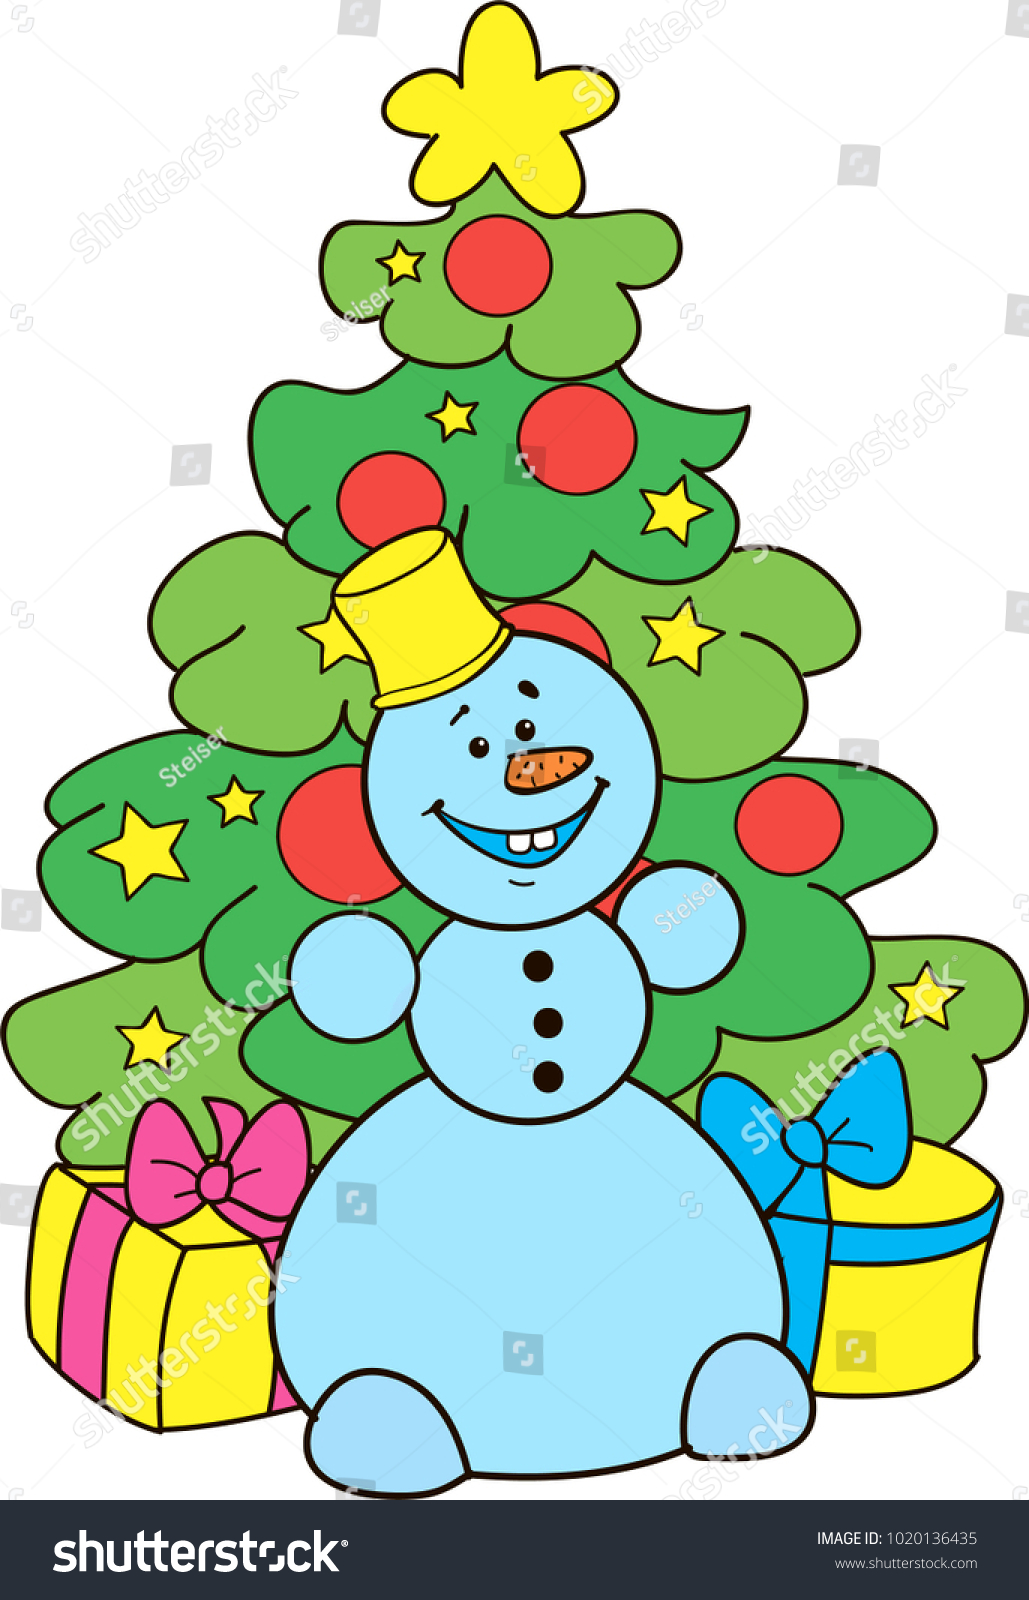 Coloring Page Outline Cartoon Smiling Snowman Stock Vector ...